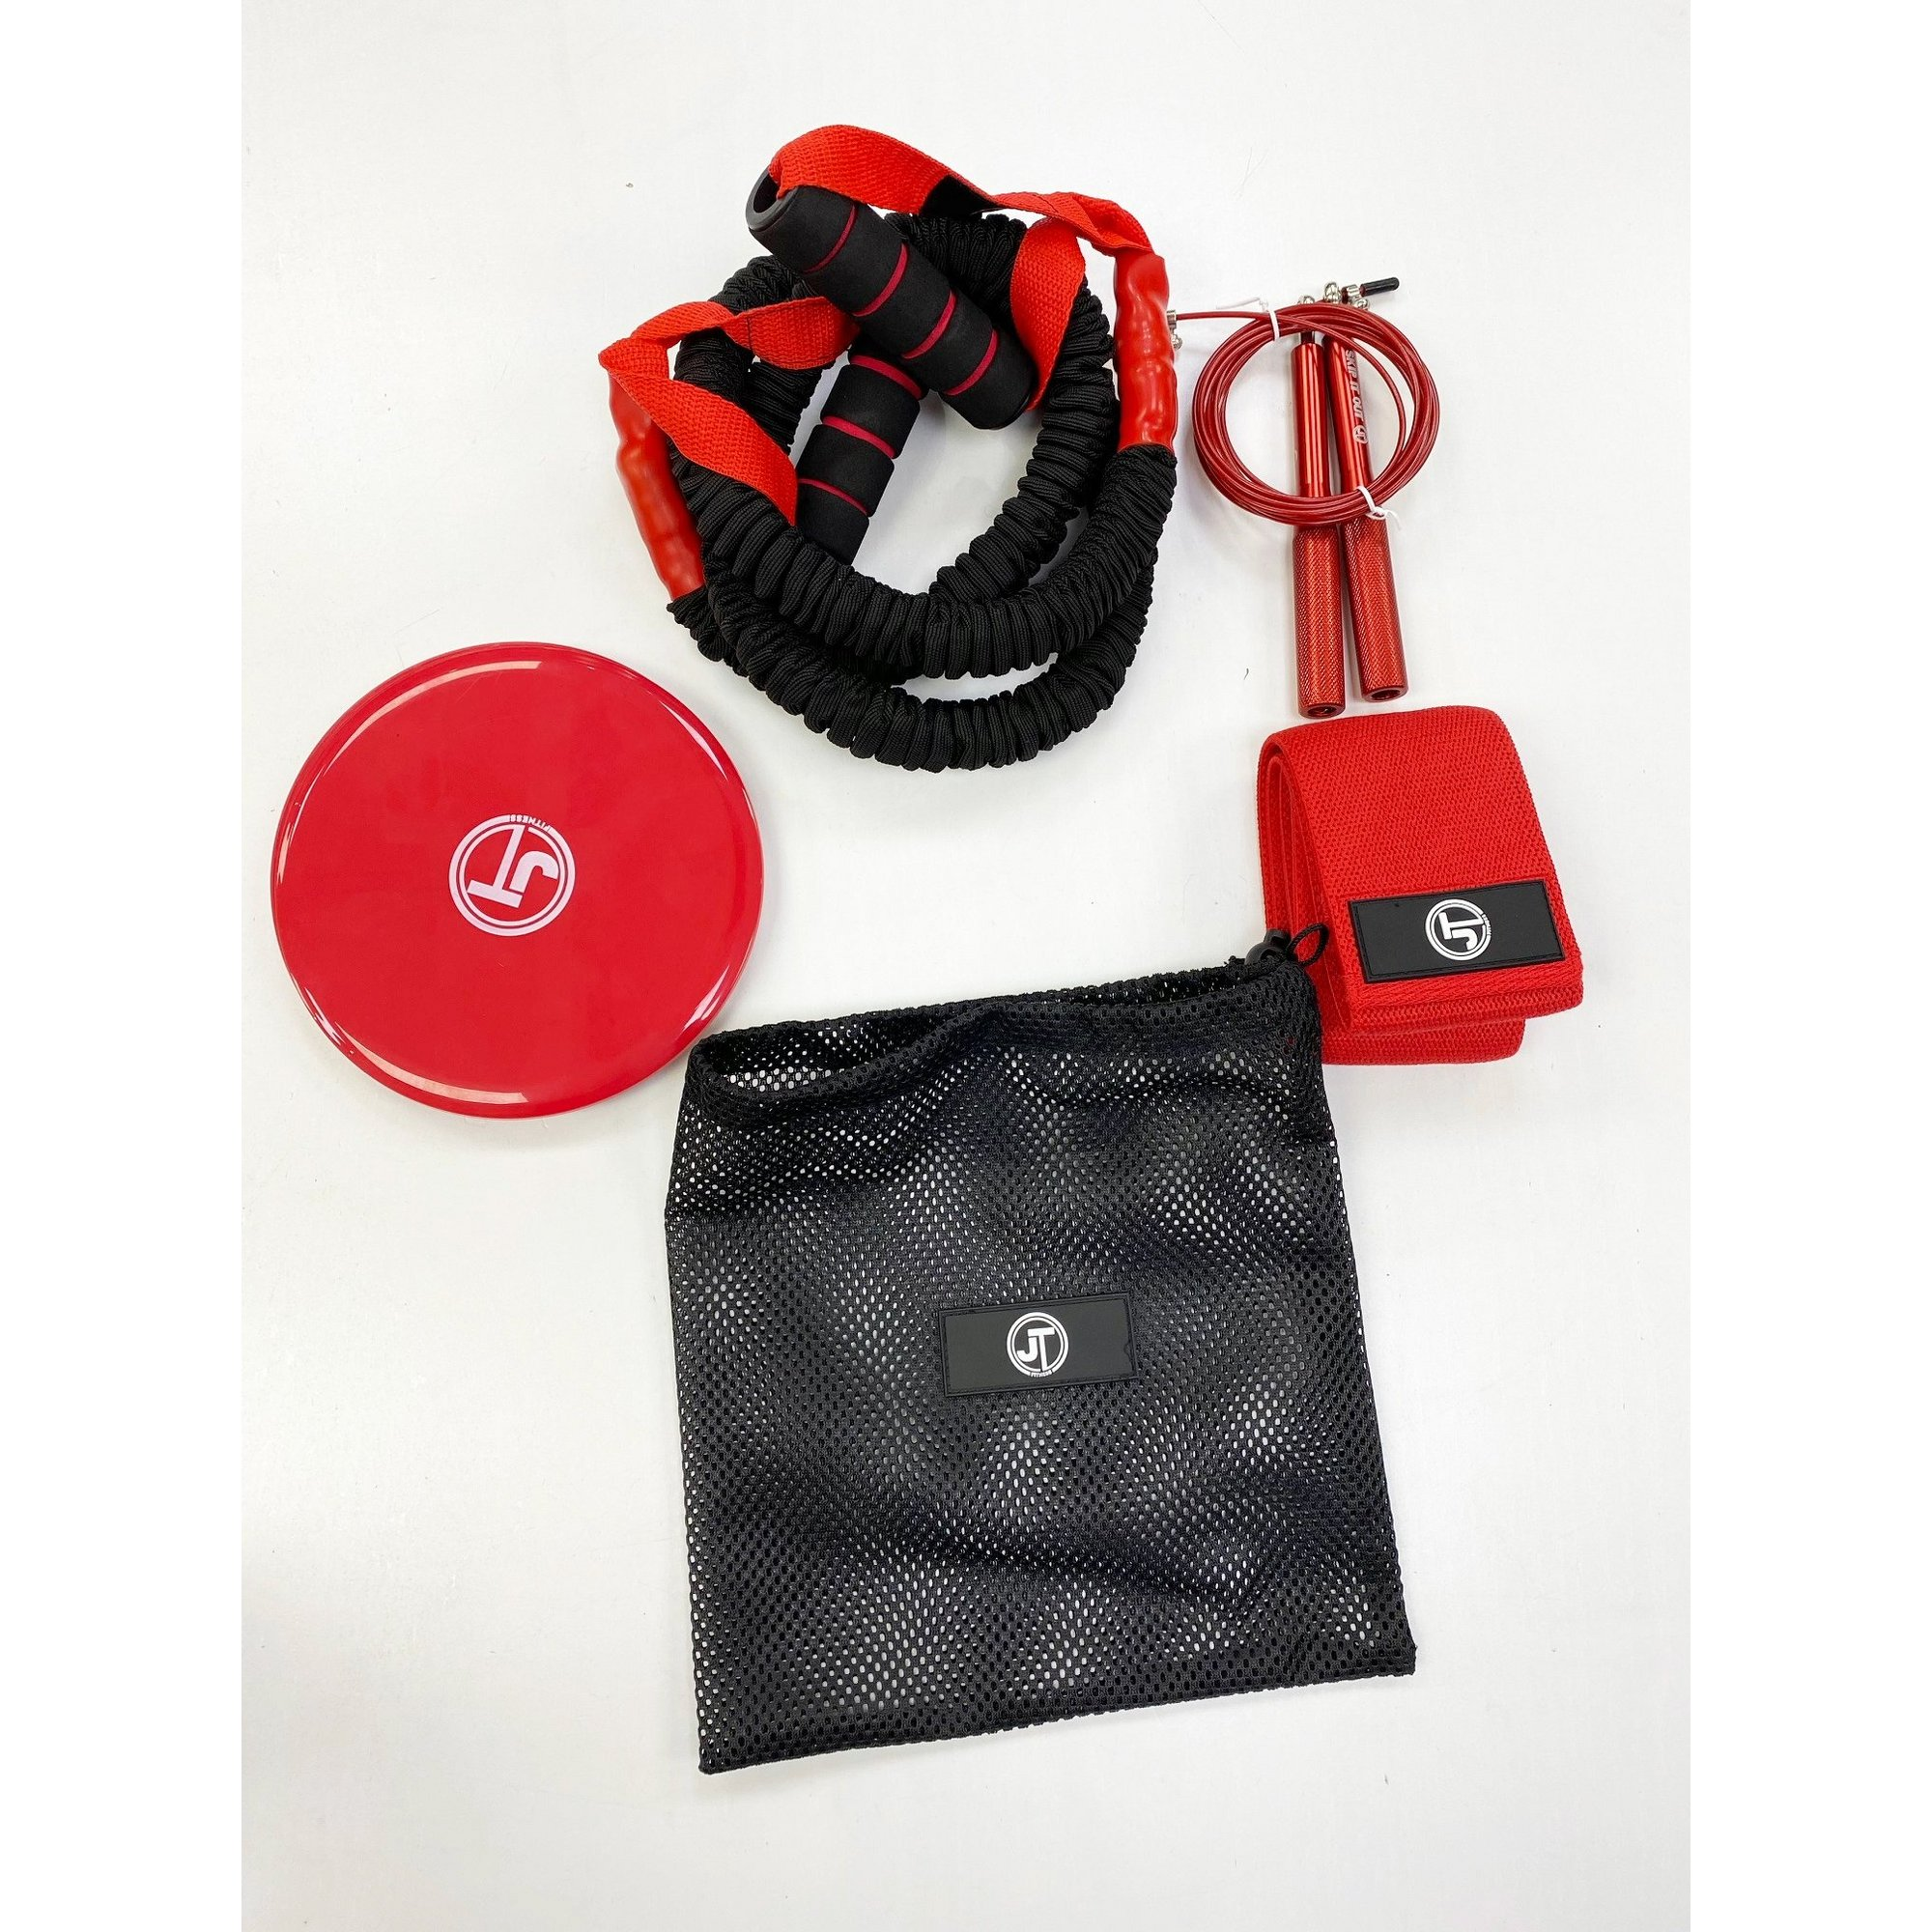 Image of JT Resistance Kit On The Go